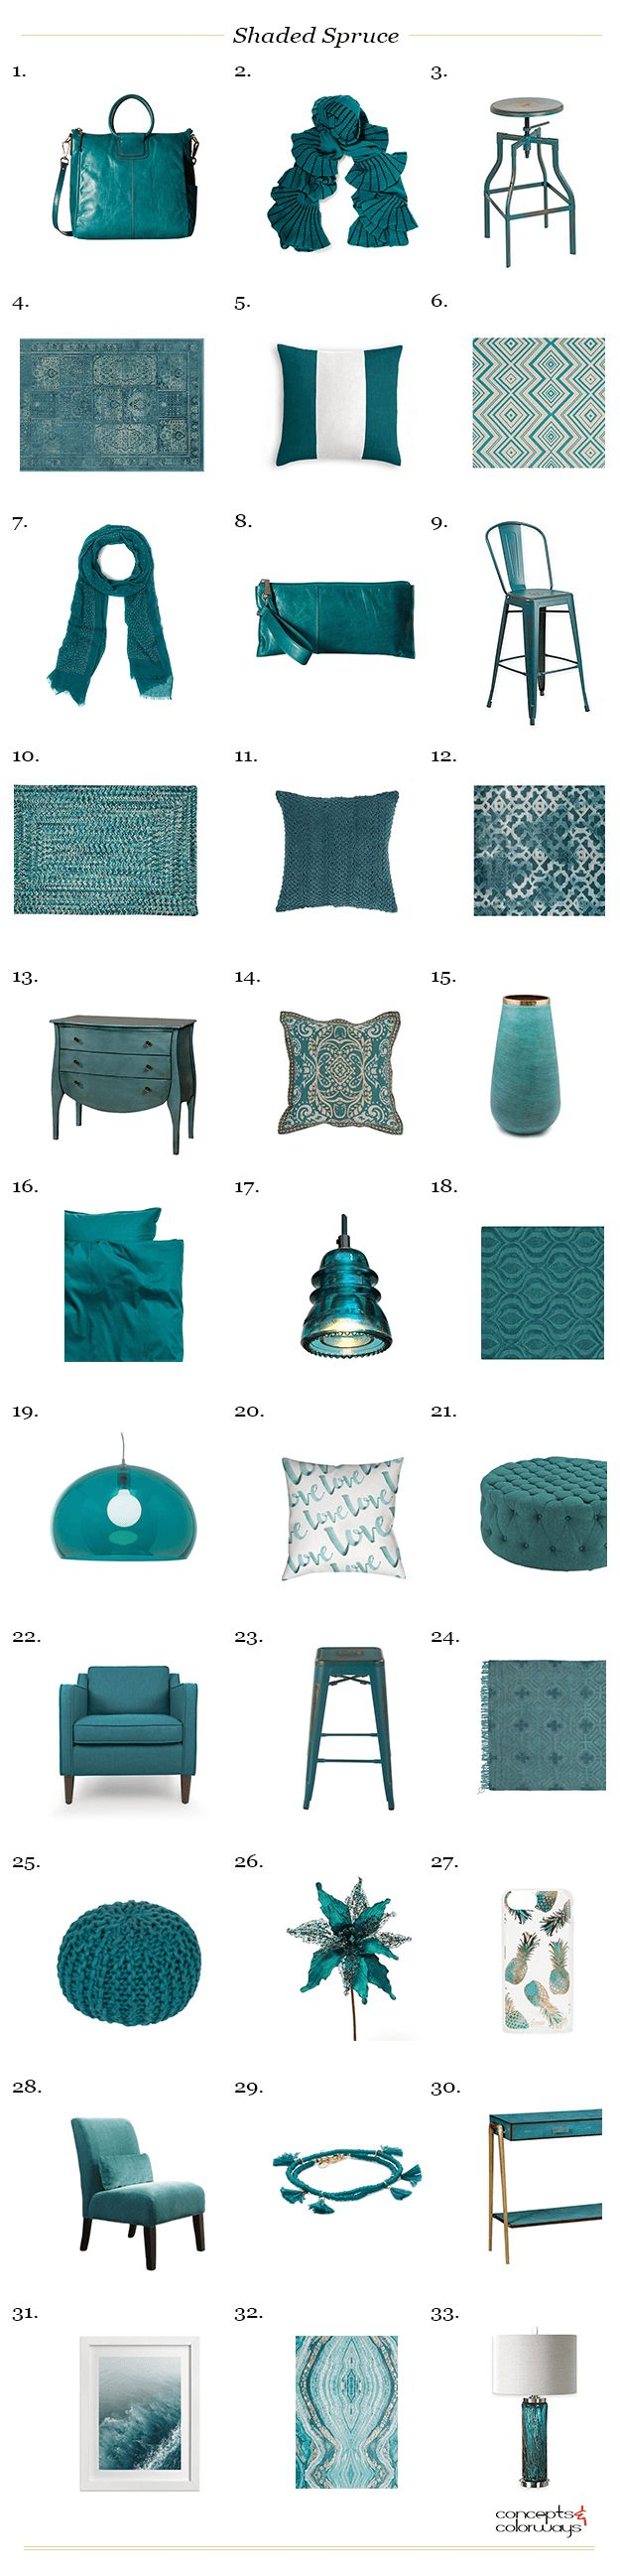 Best 25+ Teal green color ideas on Pinterest